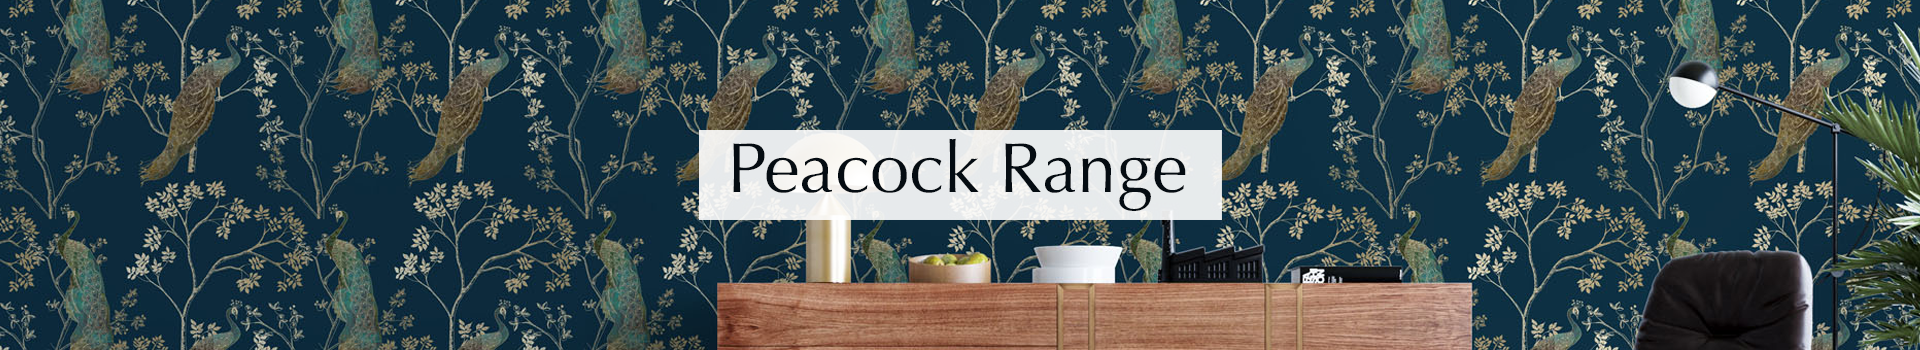 peacock-range-category-banner-celina-digby.png